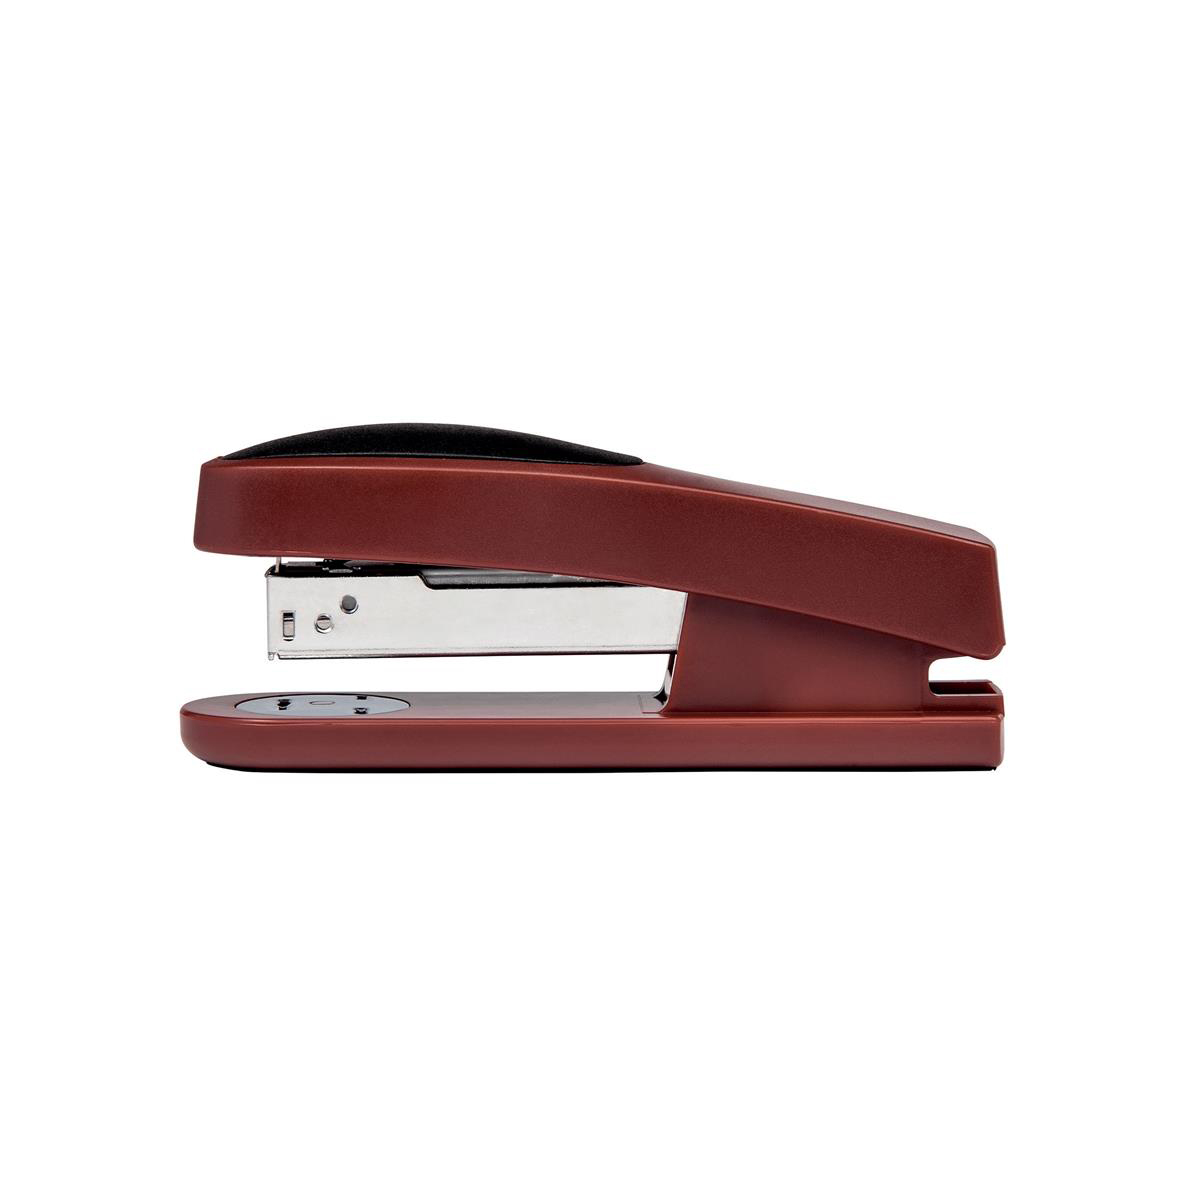 Long Arm Staplers 5 Star Office Half Strip Stapler Top Loading Rubber Base 25 Sheet Capacity Takes 26/6 Staples Red